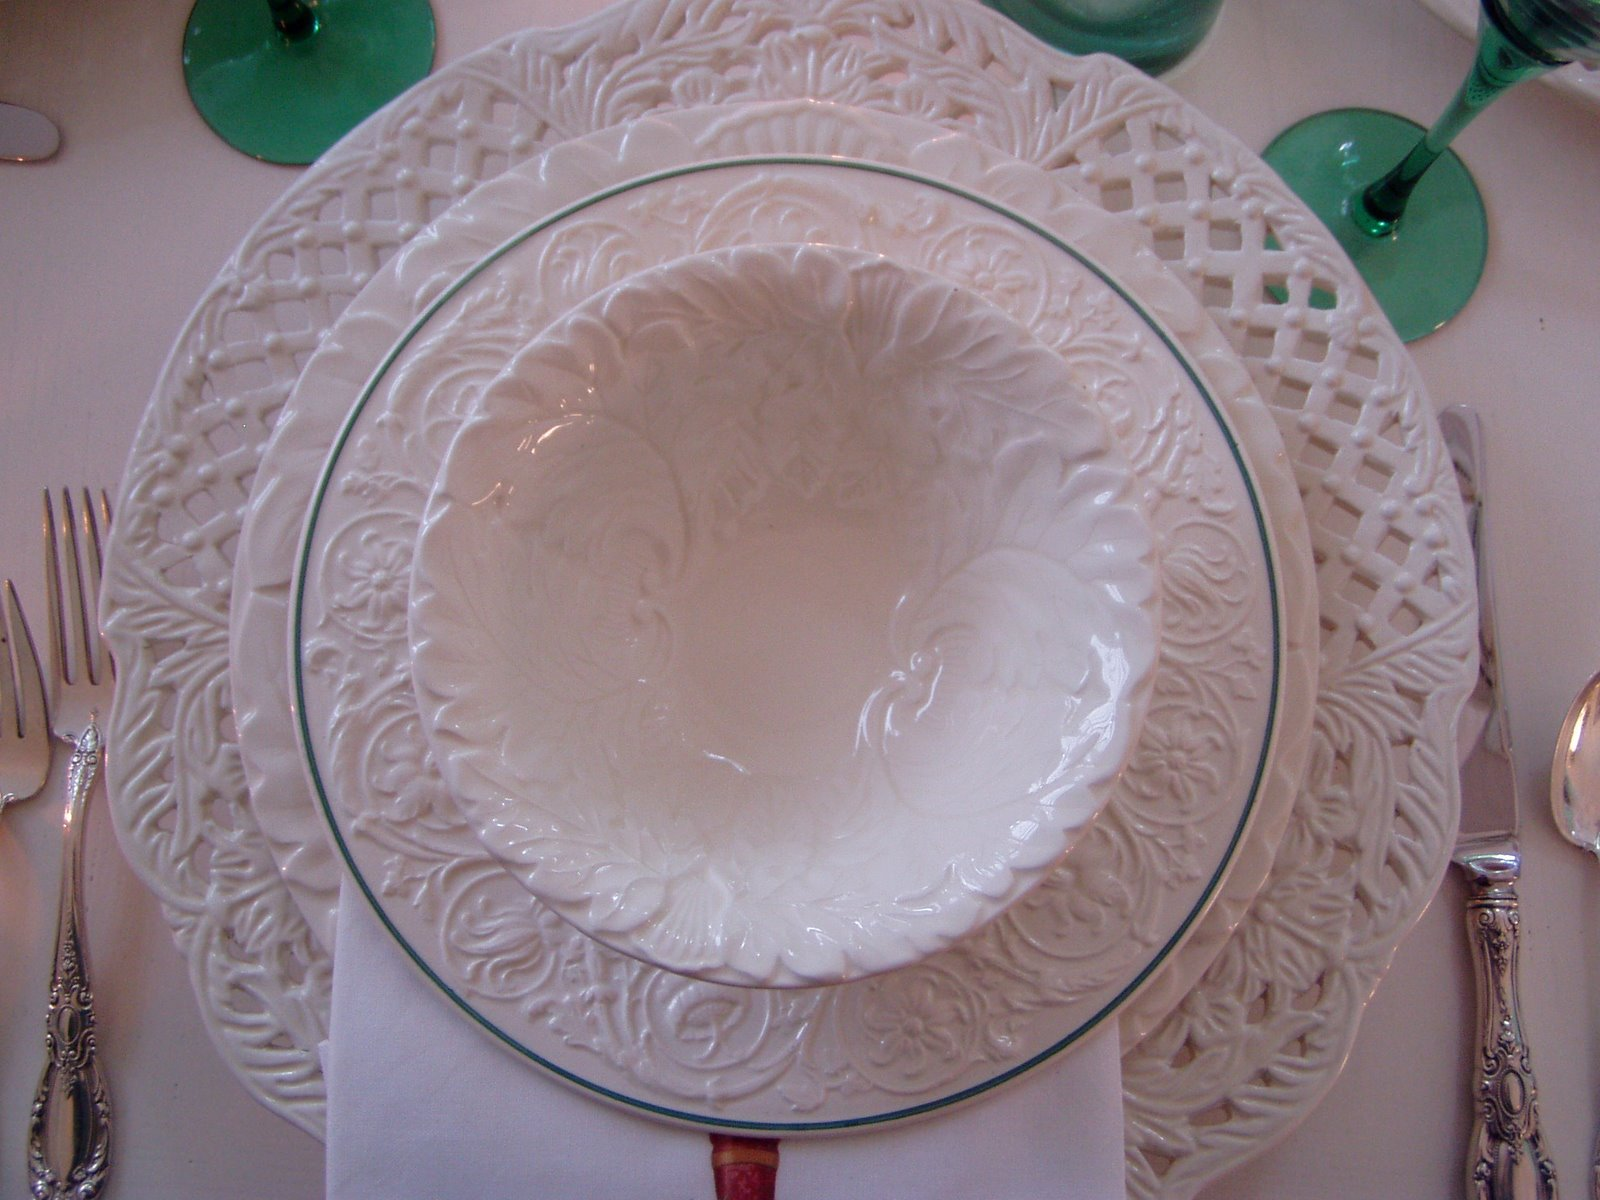 I pulled our color scheme (green and purple) from these special Wedgwood salad plates. & Tables Setting with Beautiful Wedgwood